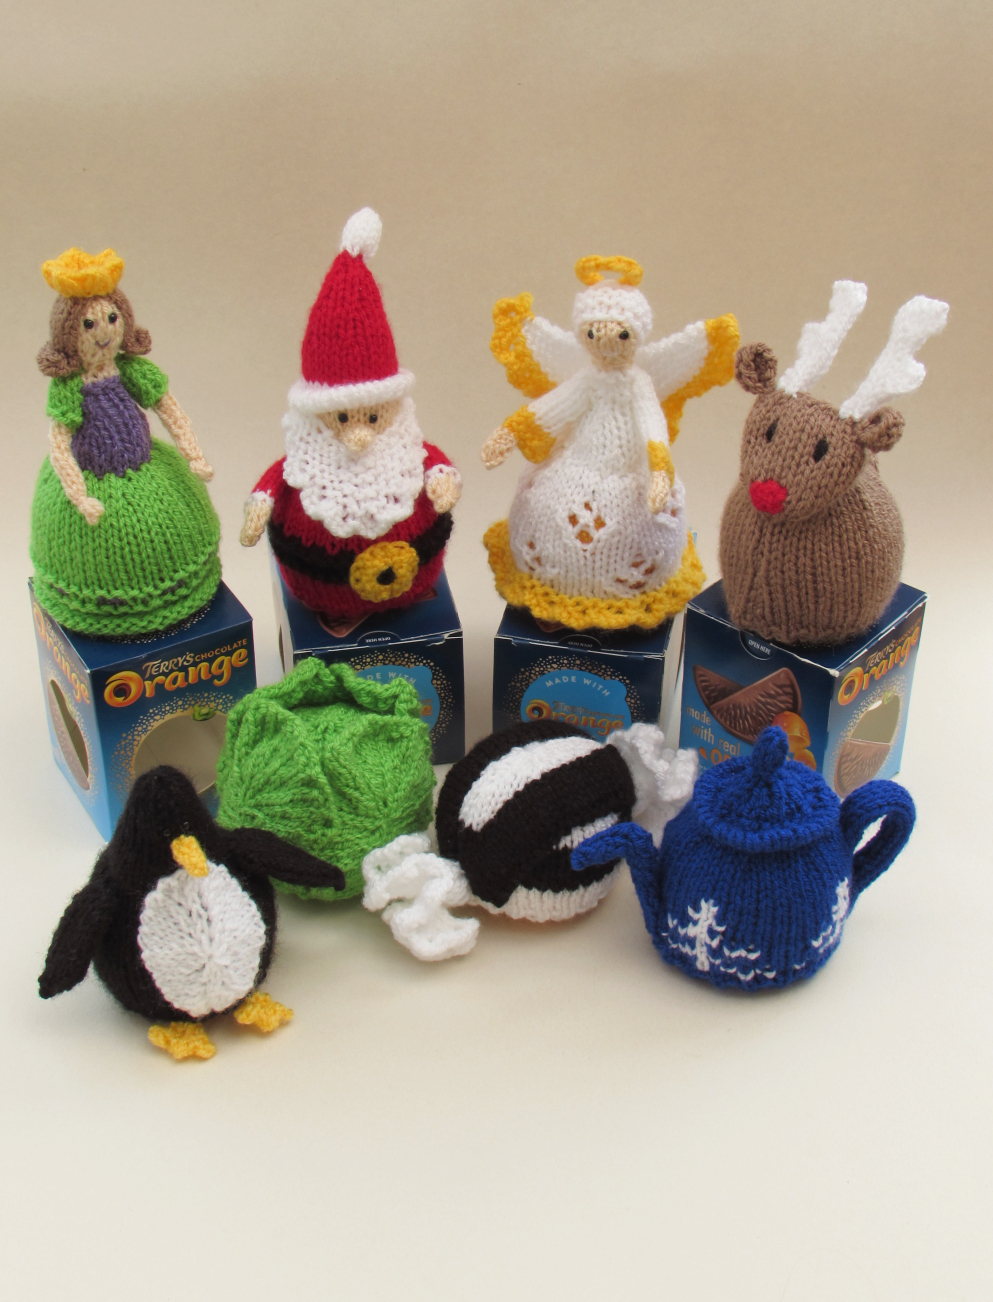 Terry%27s%20Chocolate%20Orange%20Cosies